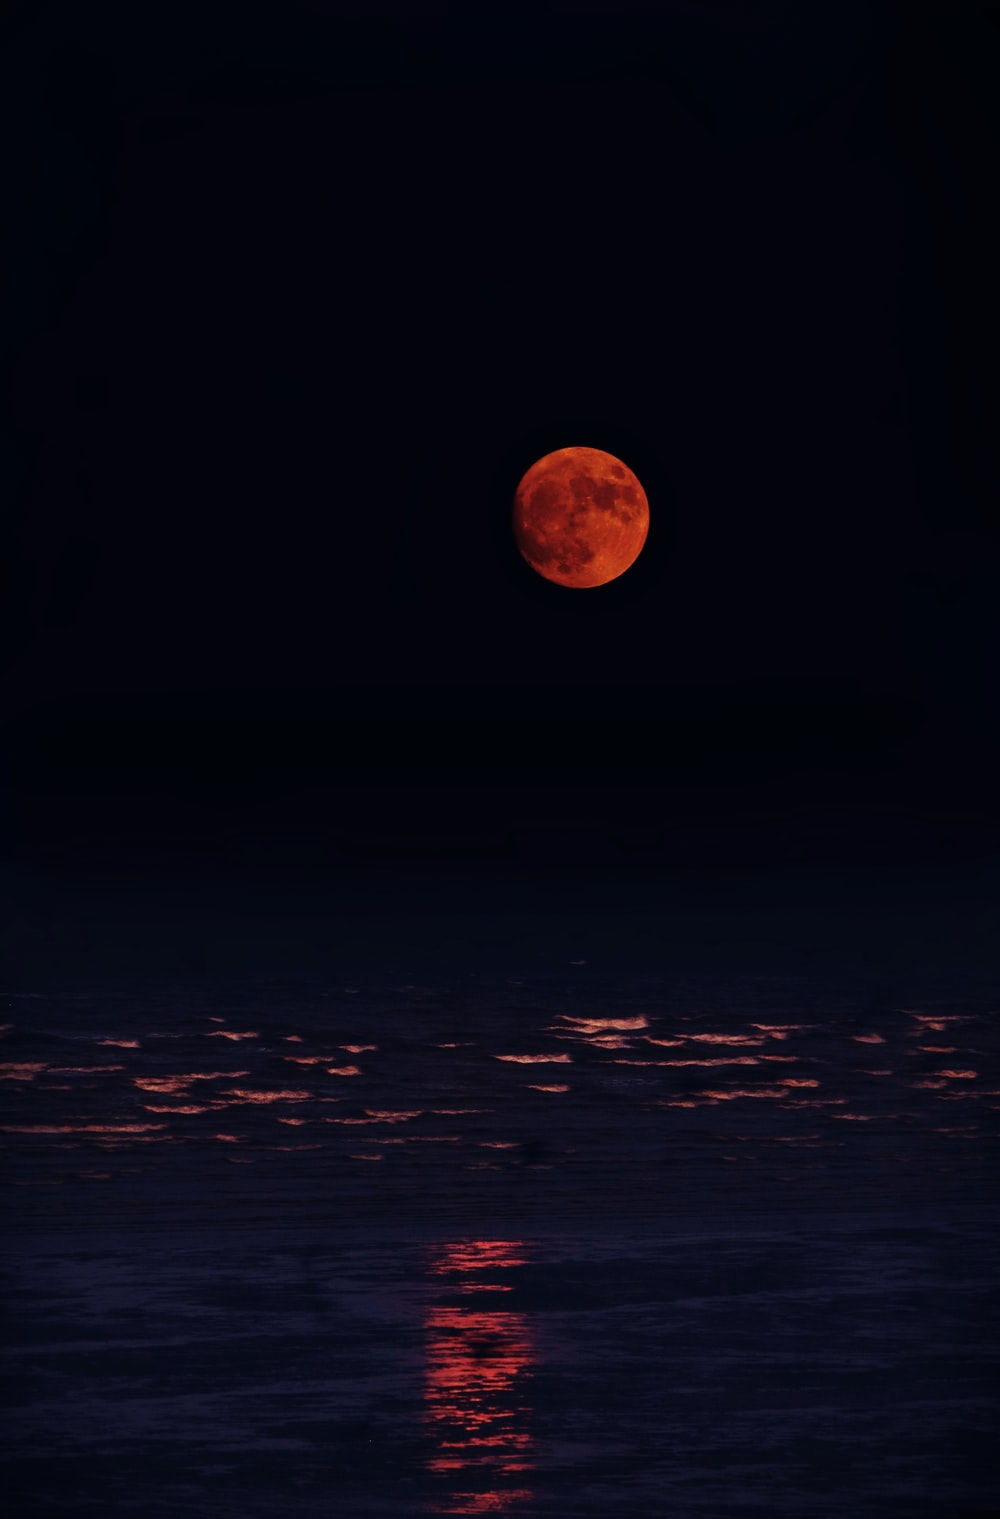 red moon and body of water